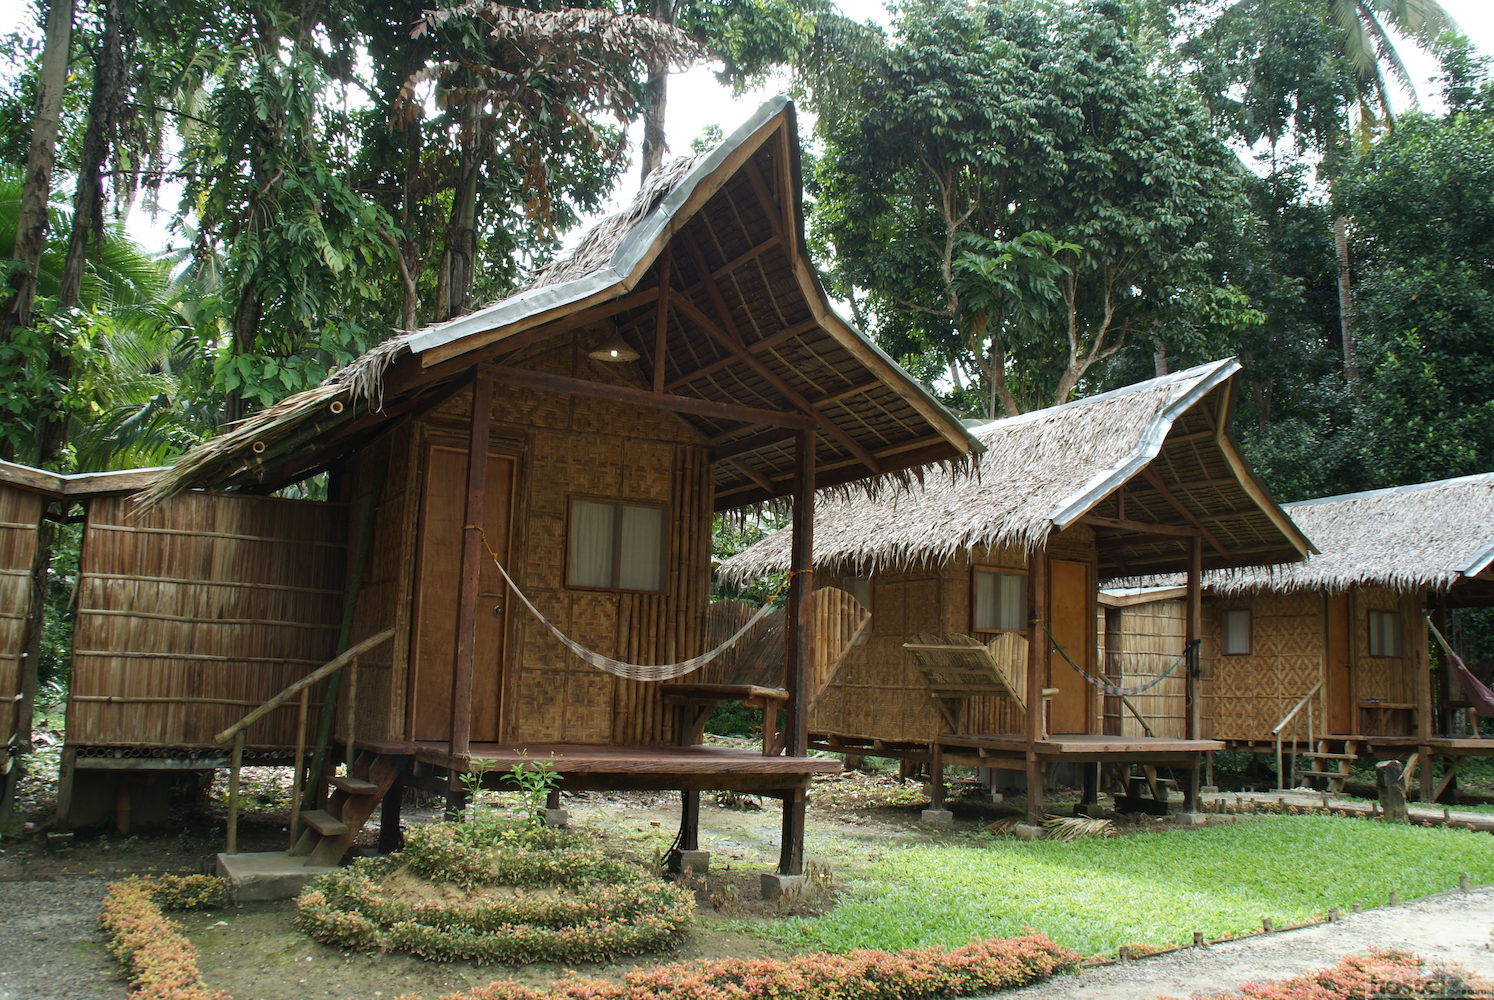 Nipa hut village bohol philippines reviews for Nipa hut interior designs